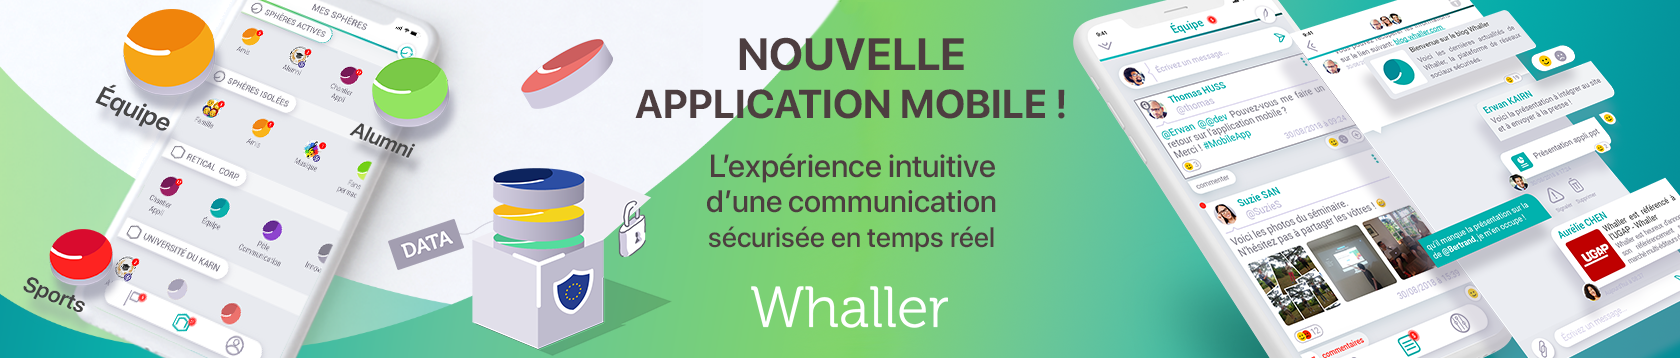 https://whaller.com/fr/mobile